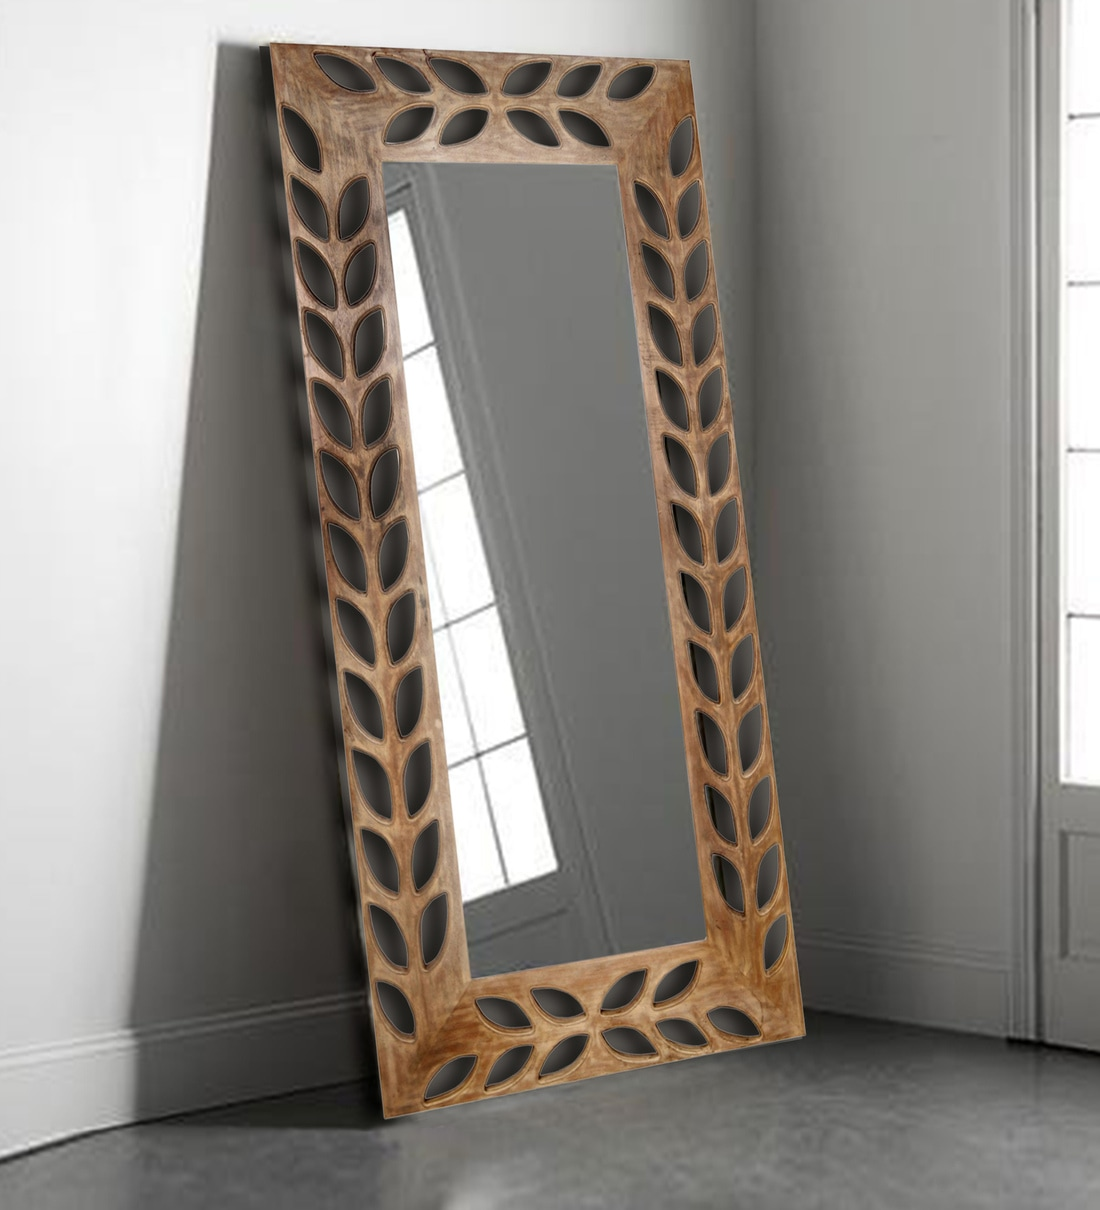 Buy Petals Carved Solid Wood Rectangular Wall Mirror In Off White Finish By Vriksh Of Life Online Eclectic Mirrors Eclectic Mirrors Test Pepperfry Product